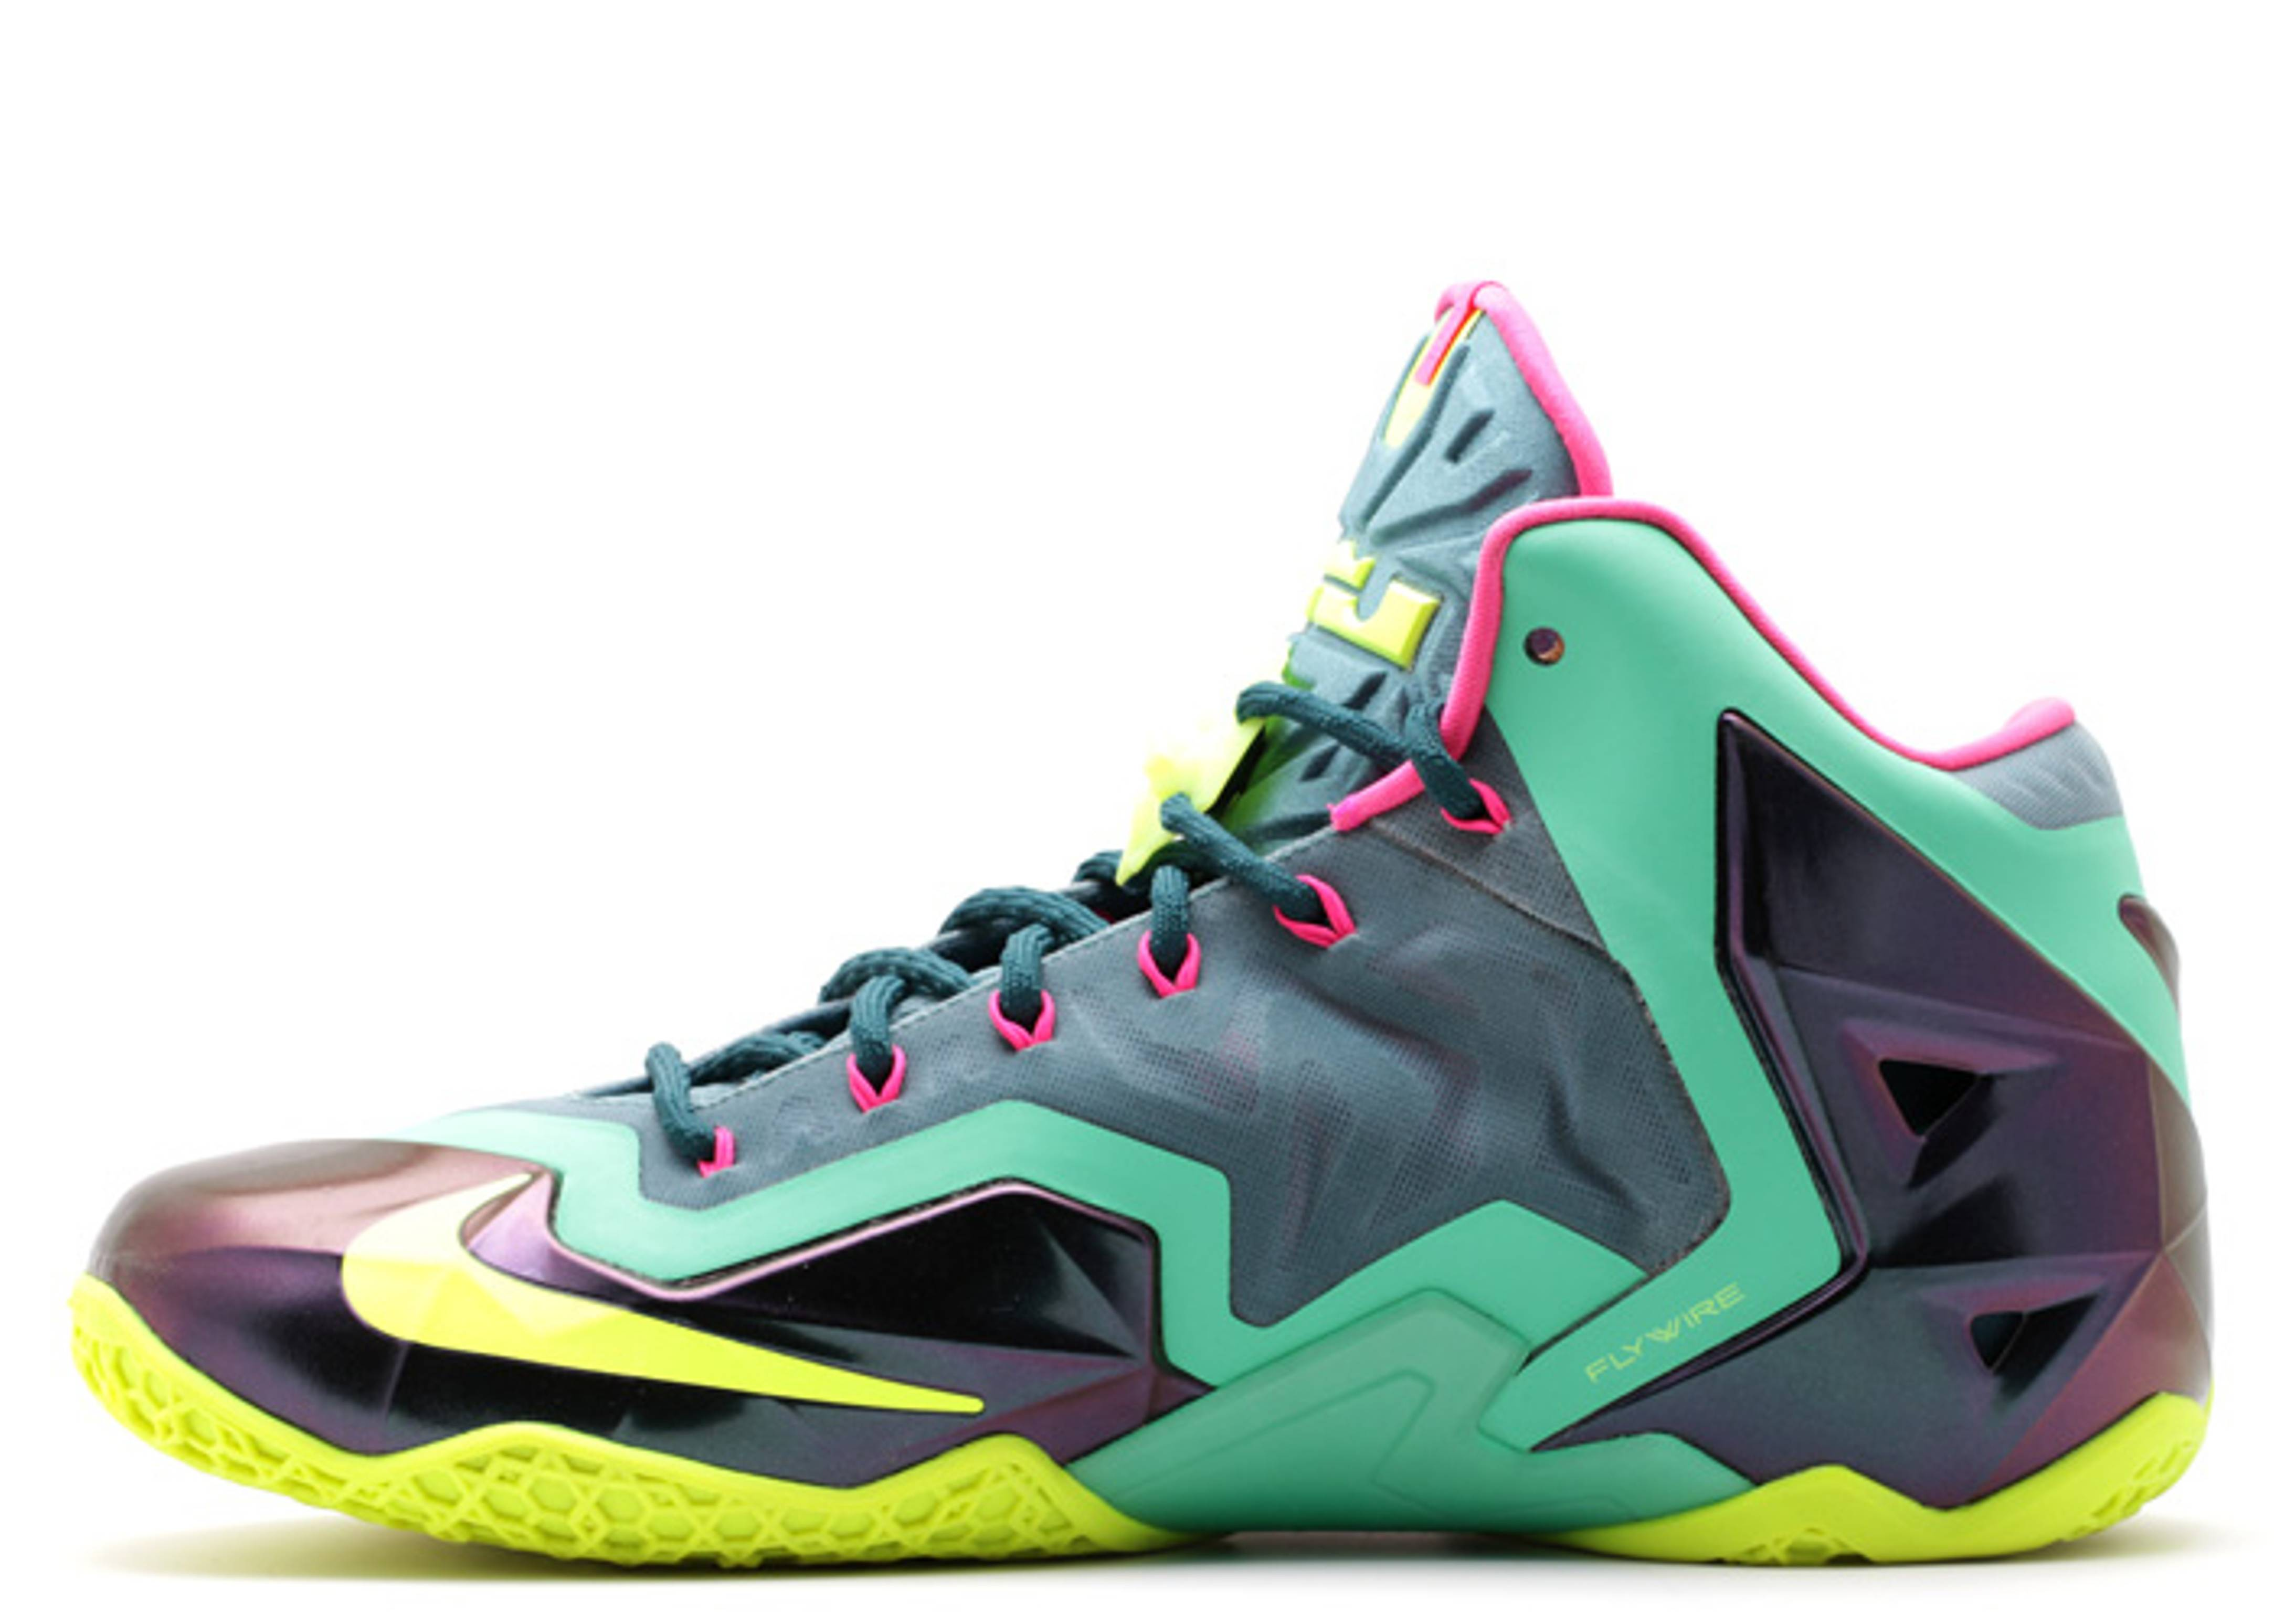 Latest information about Nike LeBron 10 Elite Superhero. More information  about Nike LeBron 10 Elite Superhero shoes including release dates a75c300490